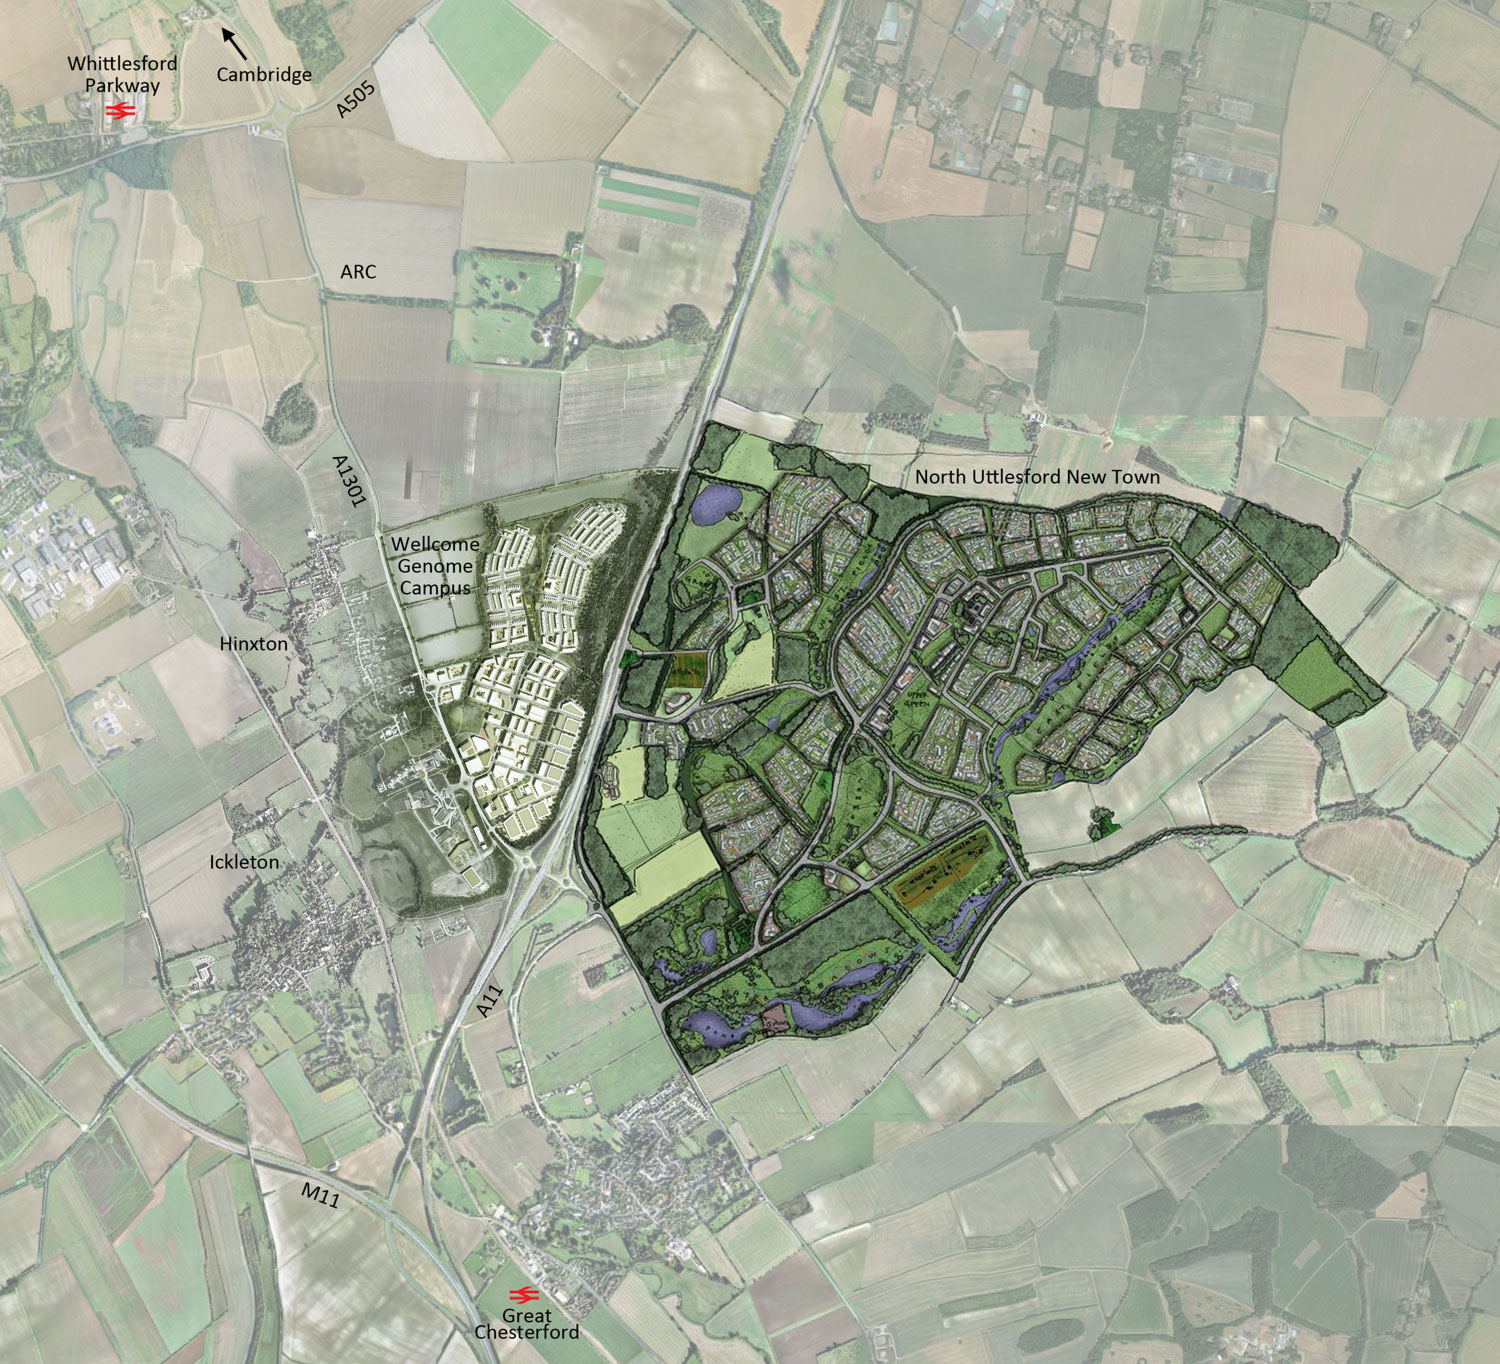 Genome Campus expansion and North Uttlesford New Town